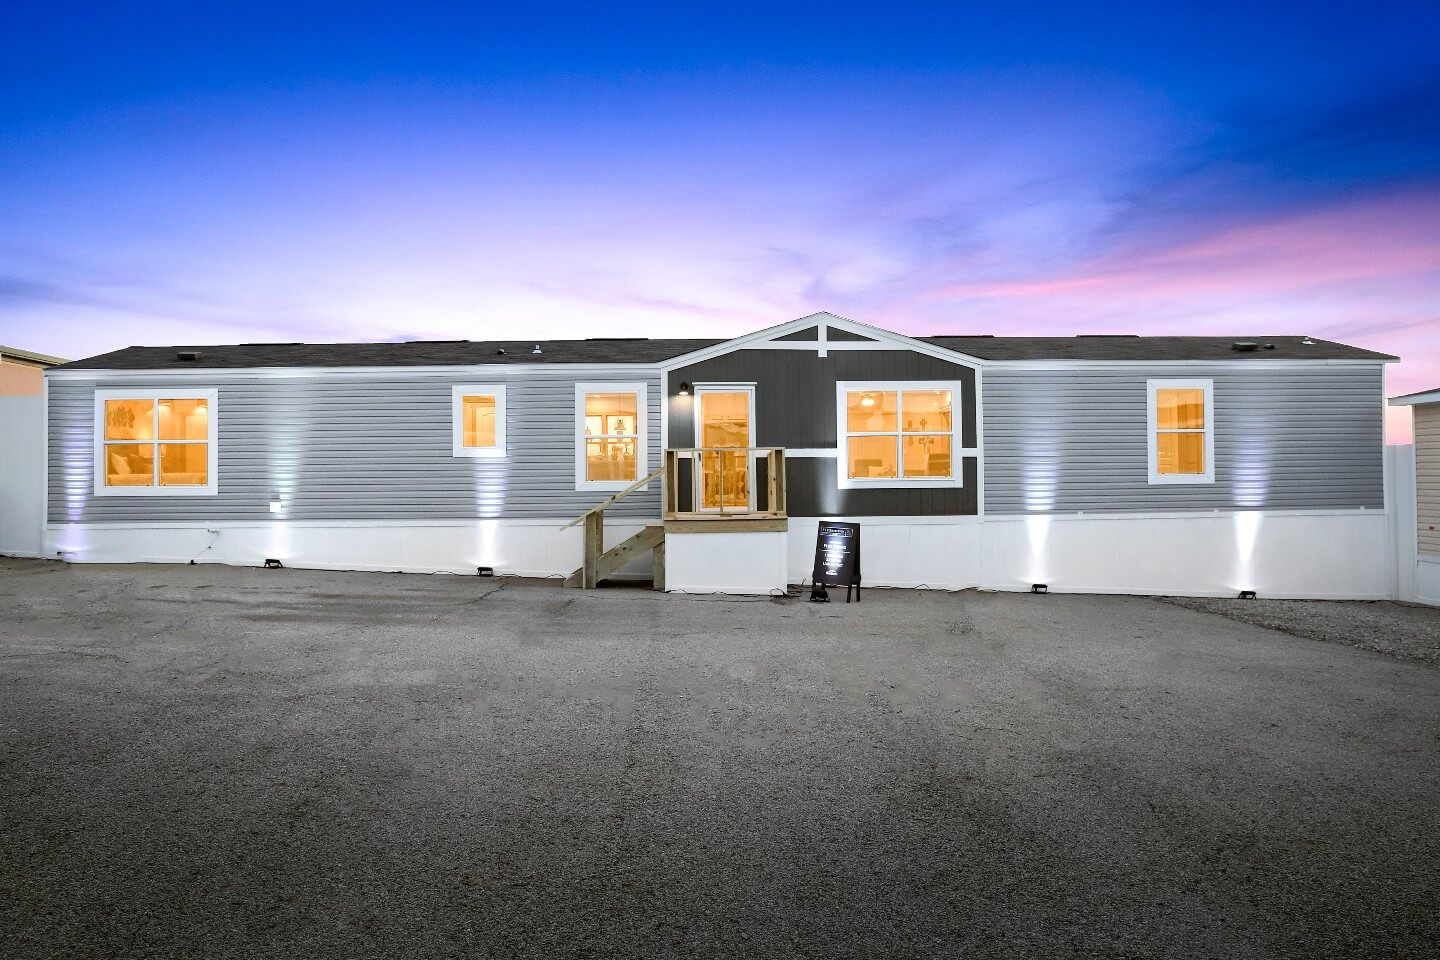 House Manufactured Homes For Sale Houston